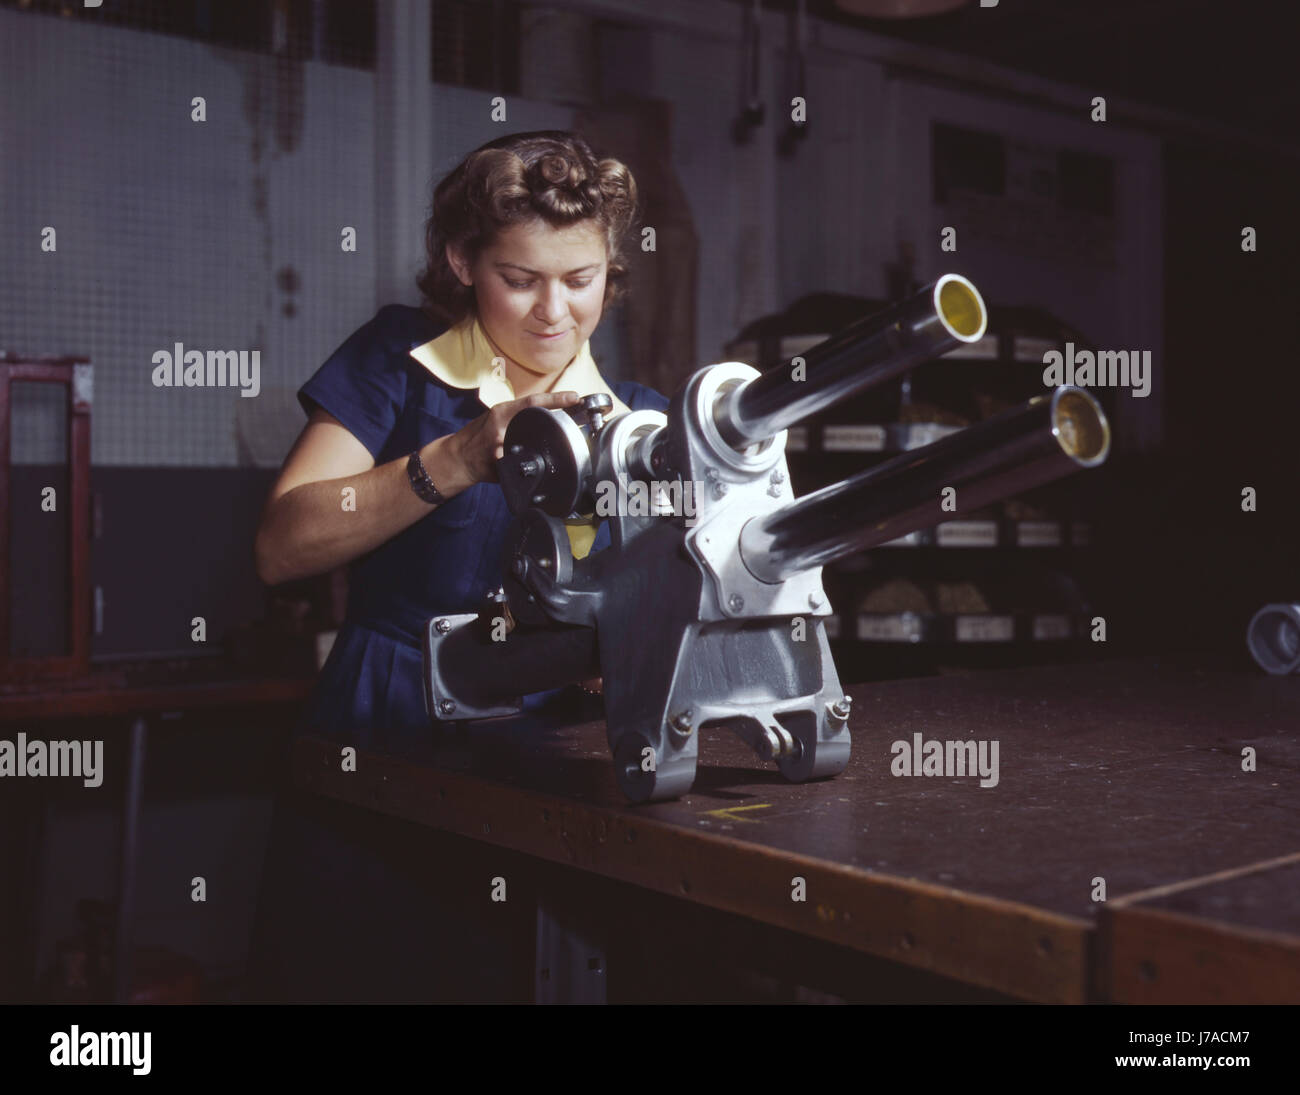 A young woman working over the landing gear mechanism of a P-51 fighter plane, 1942. - Stock Image